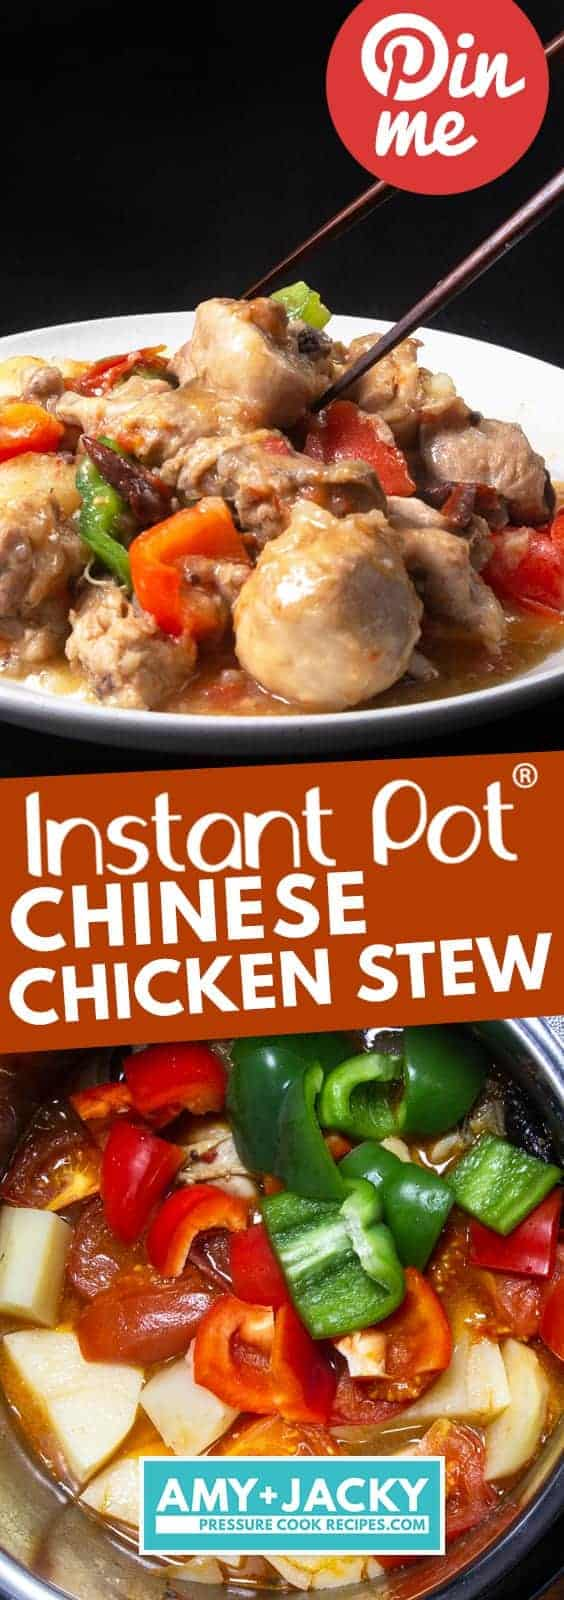 Instant Pot Chinese Chicken Stew | Instant Pot Da Pan Ji | Instant Pot Big Plate Chicken | Instant Pot Chicken Potatoes | Pressure Cooker Chicken Stew | Instant Pot Chicken Recipes | Chinese Recipes #instantpot #pressurecooker #recipes #chicken #chinese